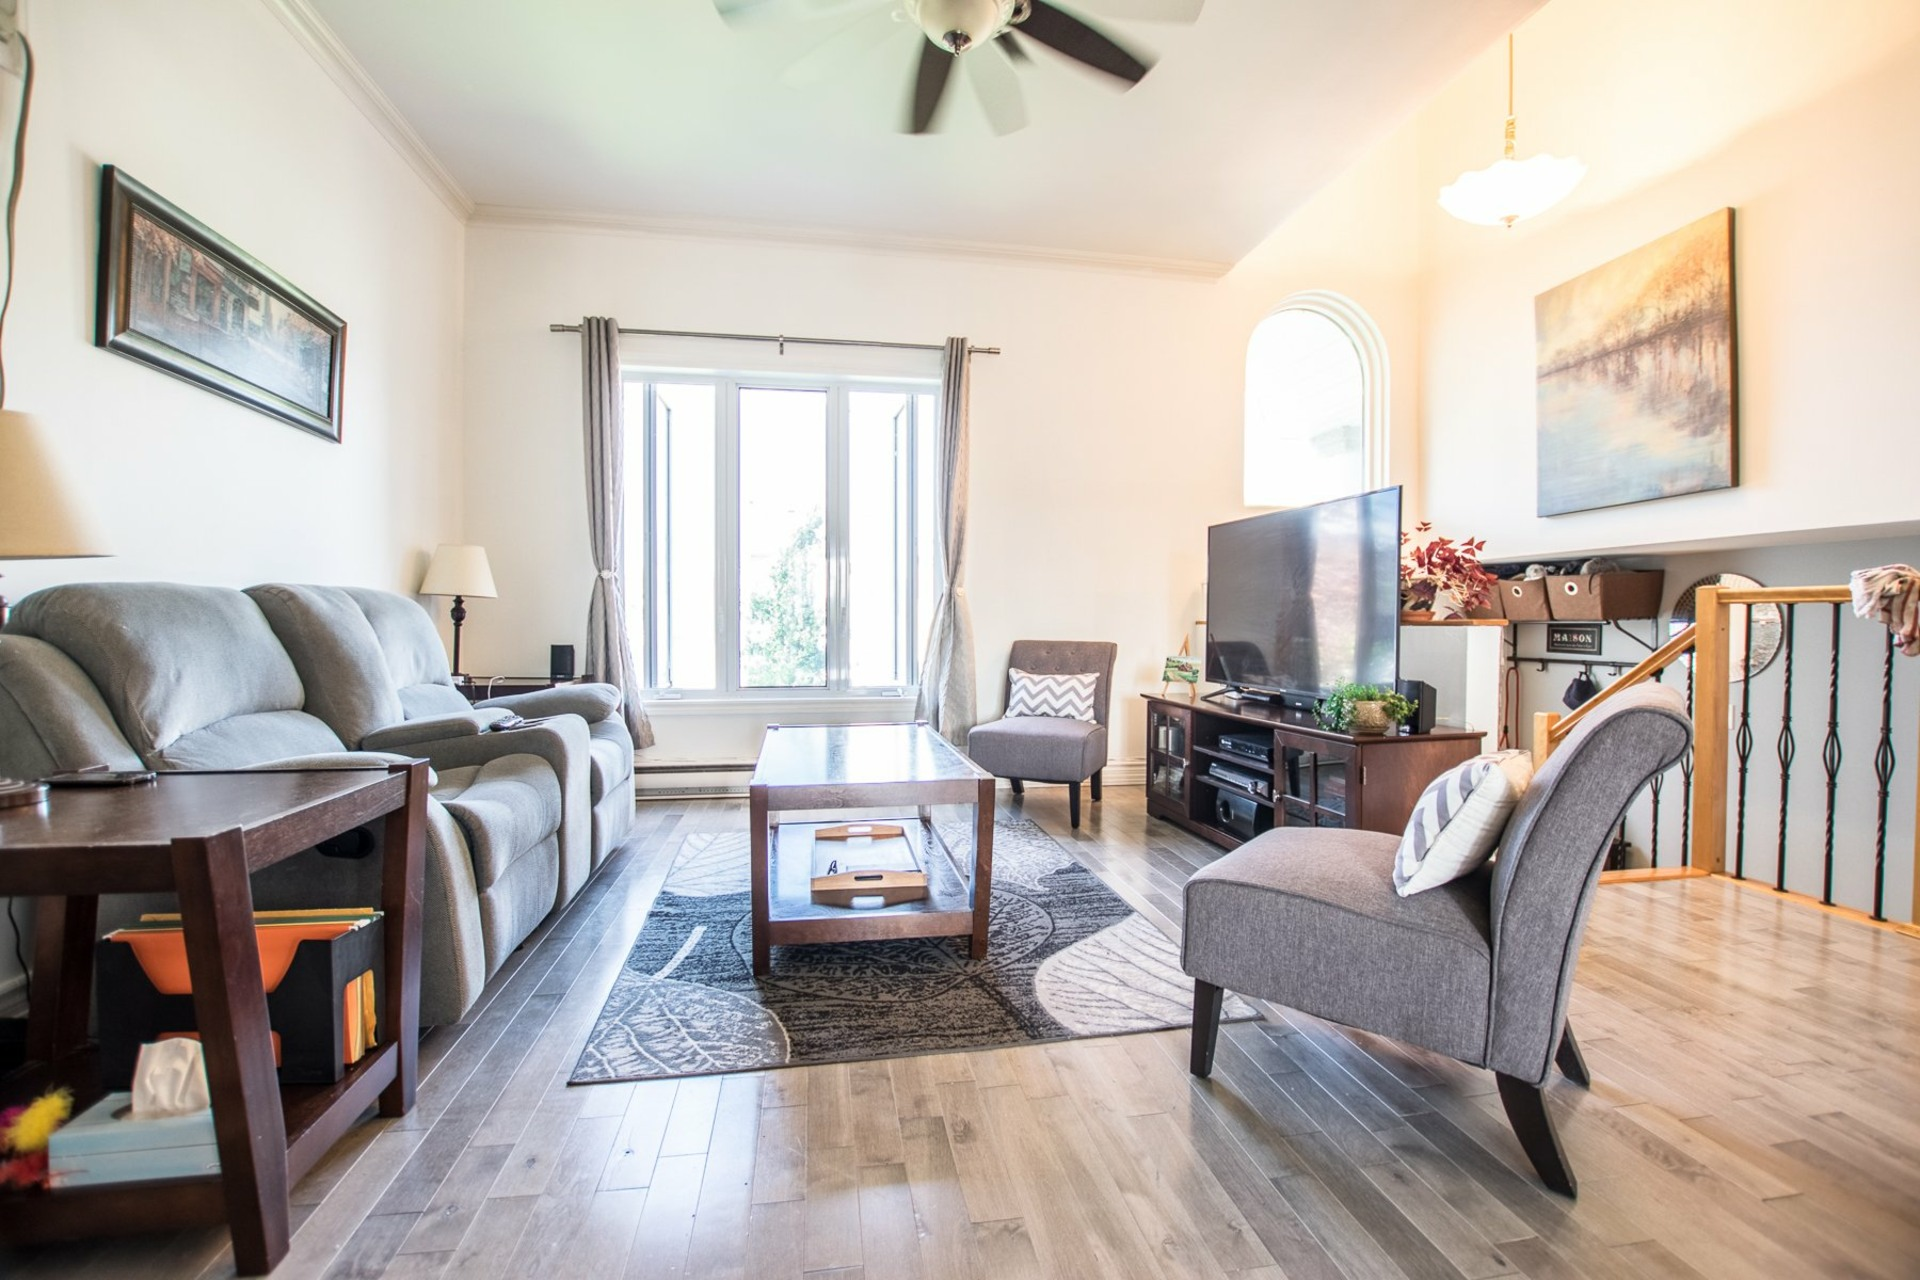 image 5 - House For sale Sainte-Catherine - 8 rooms